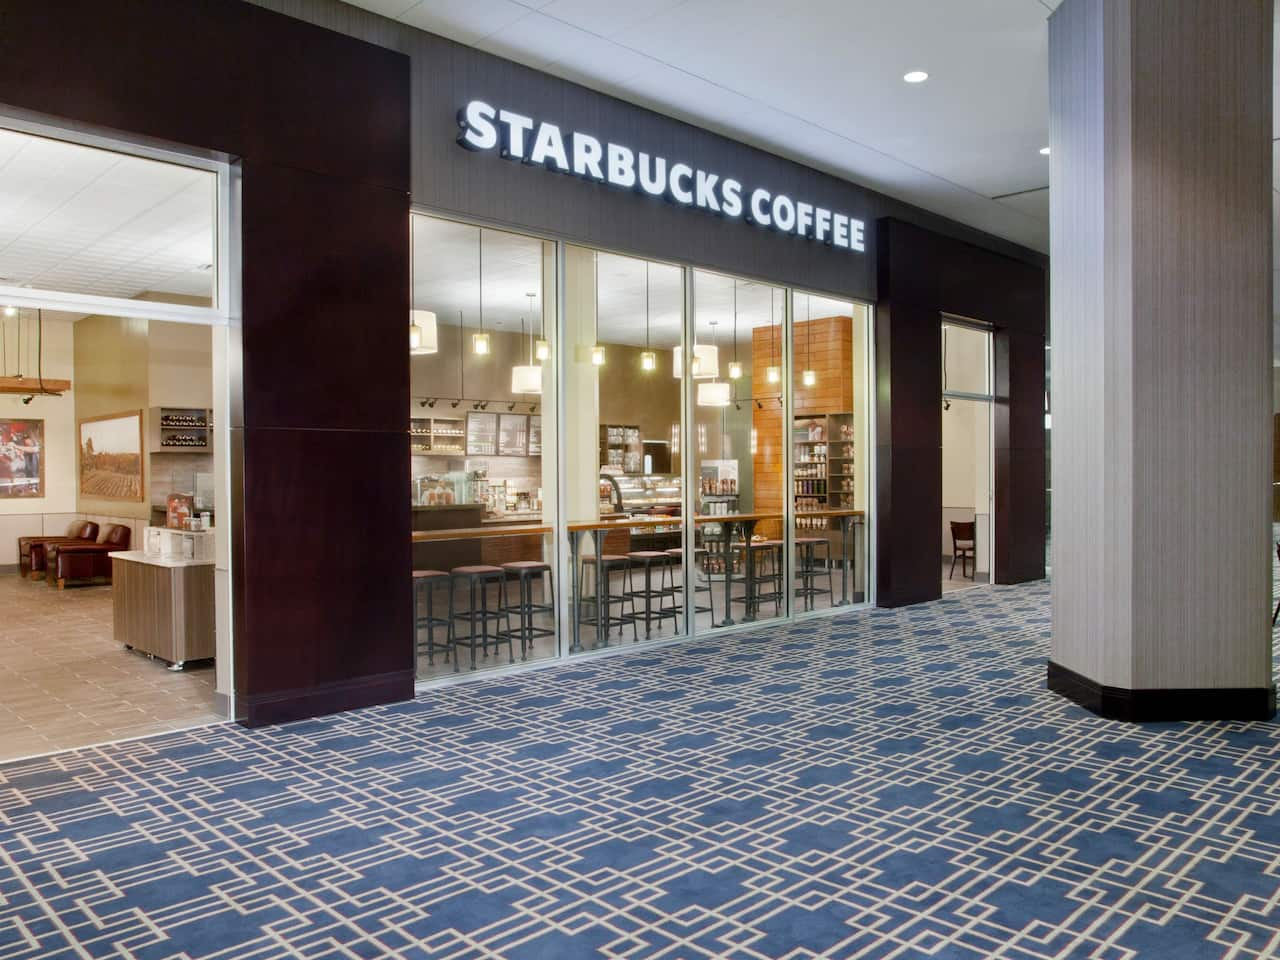 Starbucks exterior at Hyatt Regency New Orleans